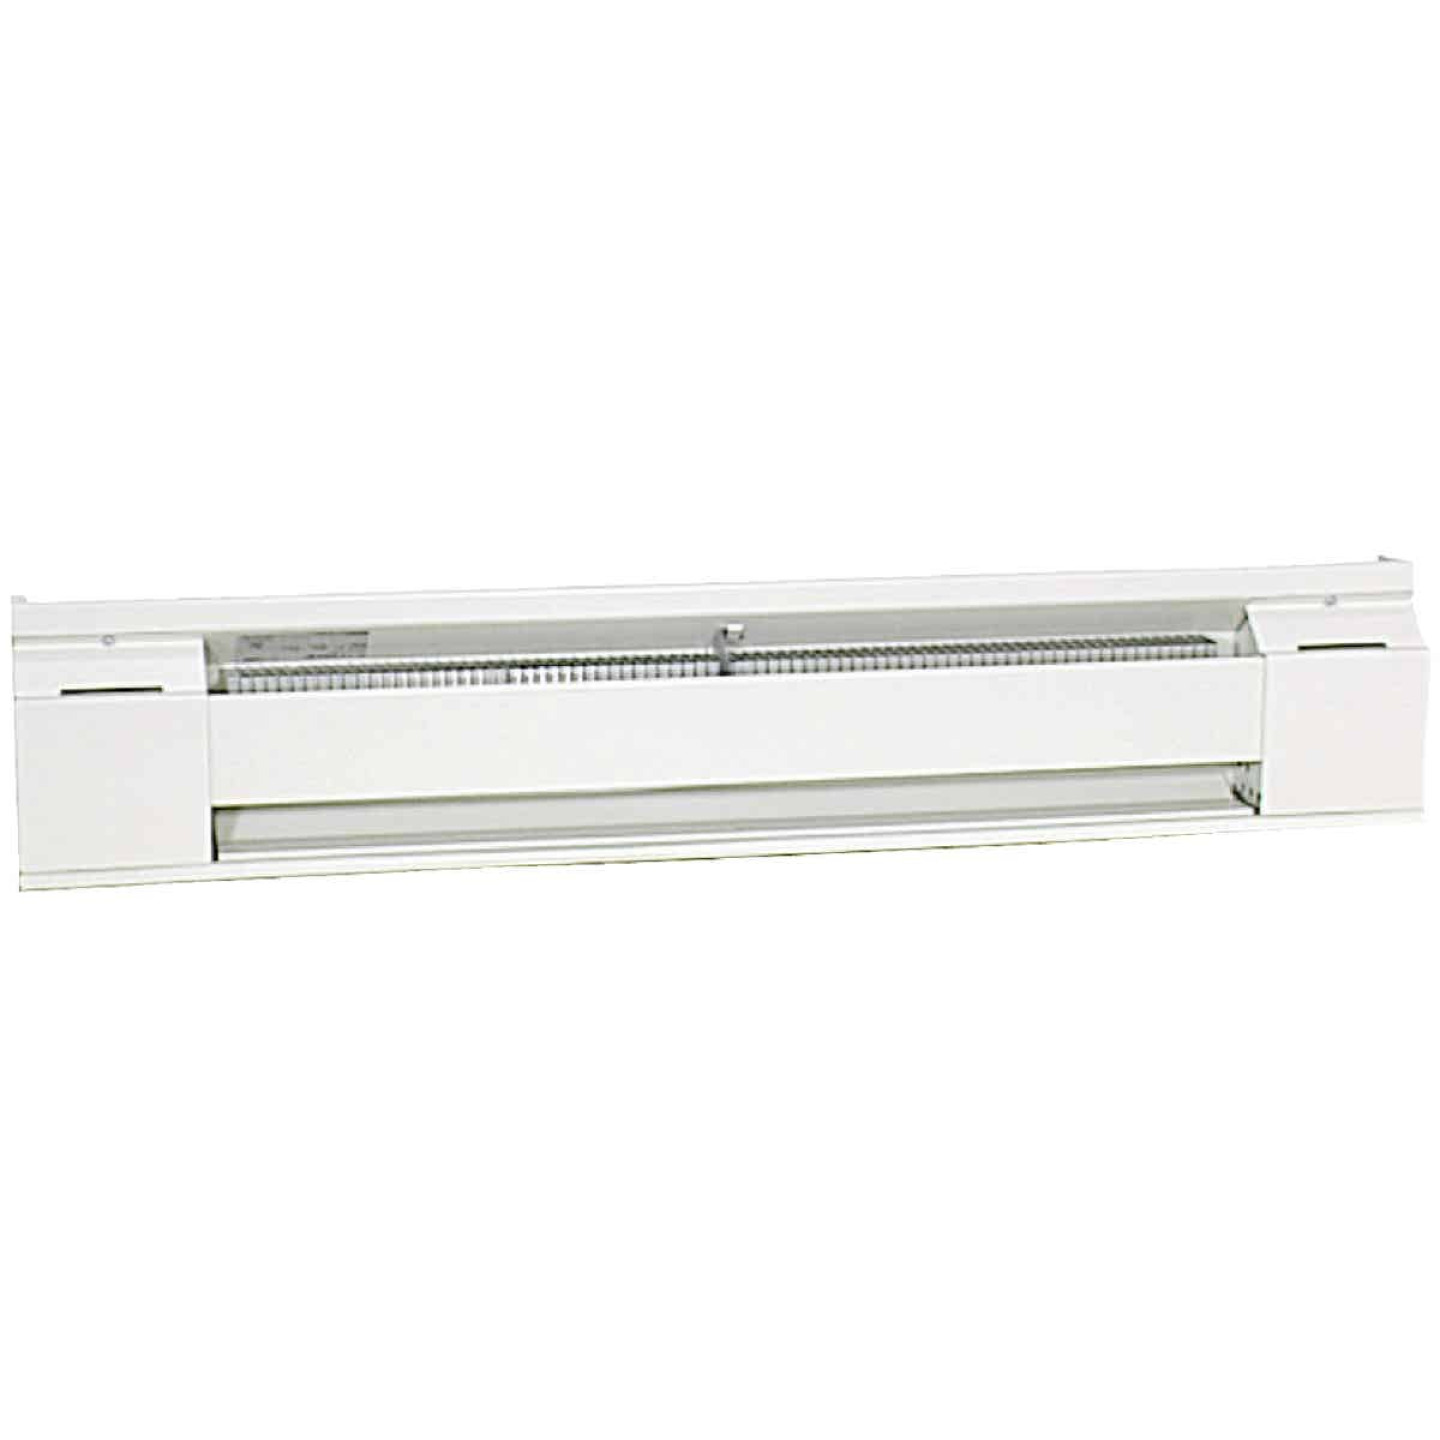 Fahrenheat 36 In. 750-Watt 240-Volt Electric Baseboard Heater, Northern White Image 2